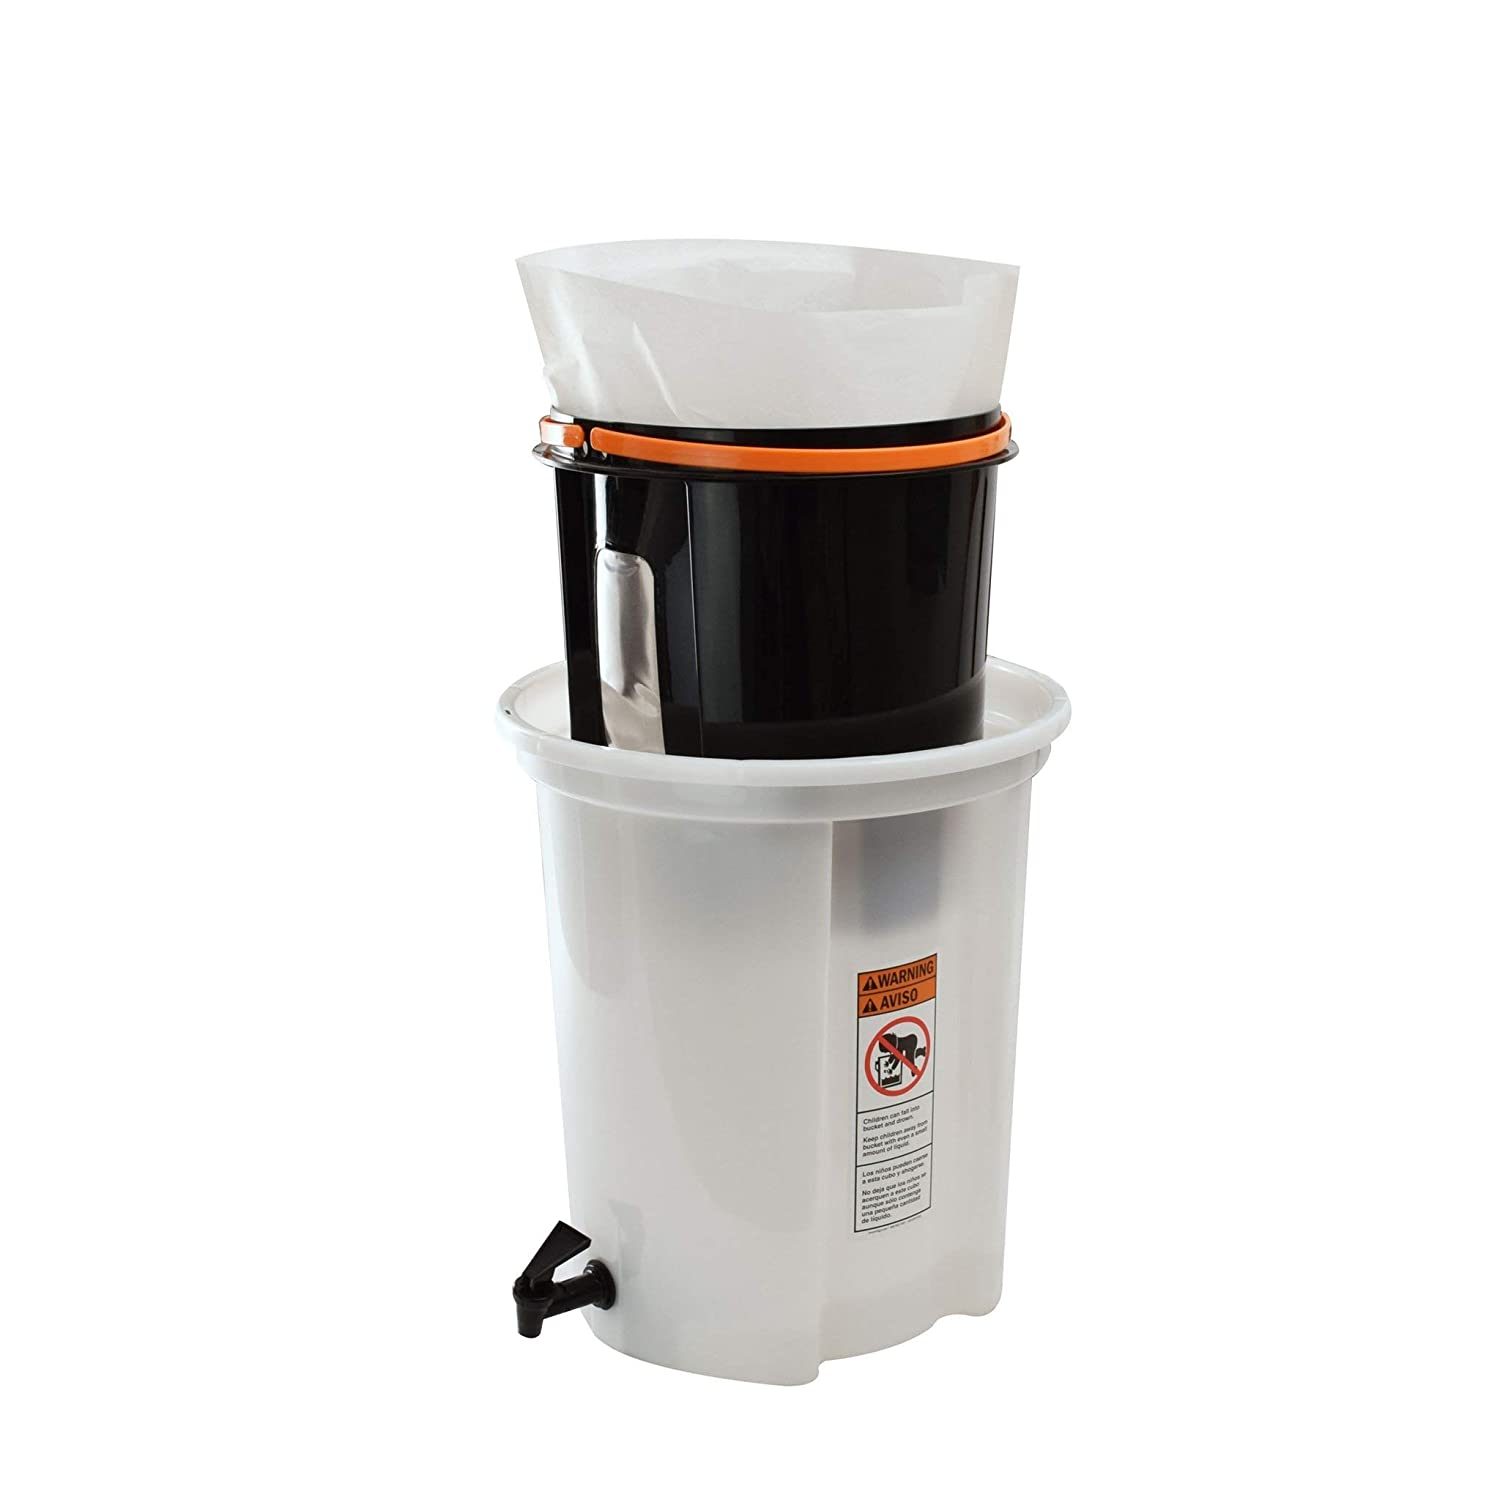 Brewista Cold Pro 4 Standard Cold Brewing System (BCP4STNSYS)